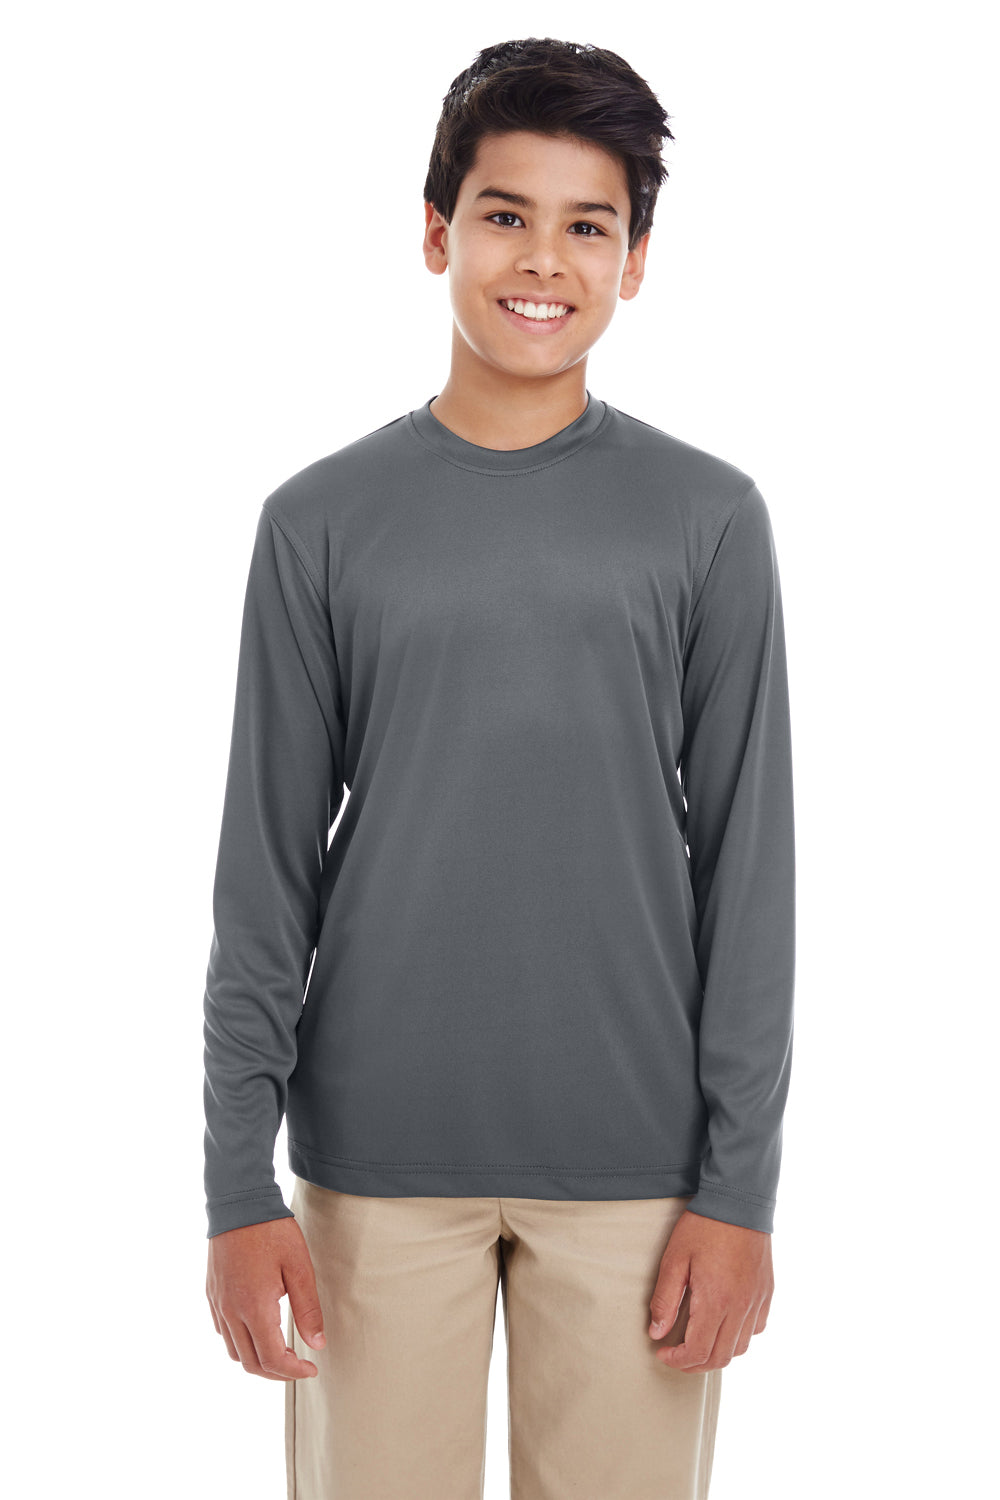 UltraClub 8622Y Youth Cool & Dry Performance Moisture Wicking Long Sleeve Crewneck T-Shirt Charcoal Grey Front